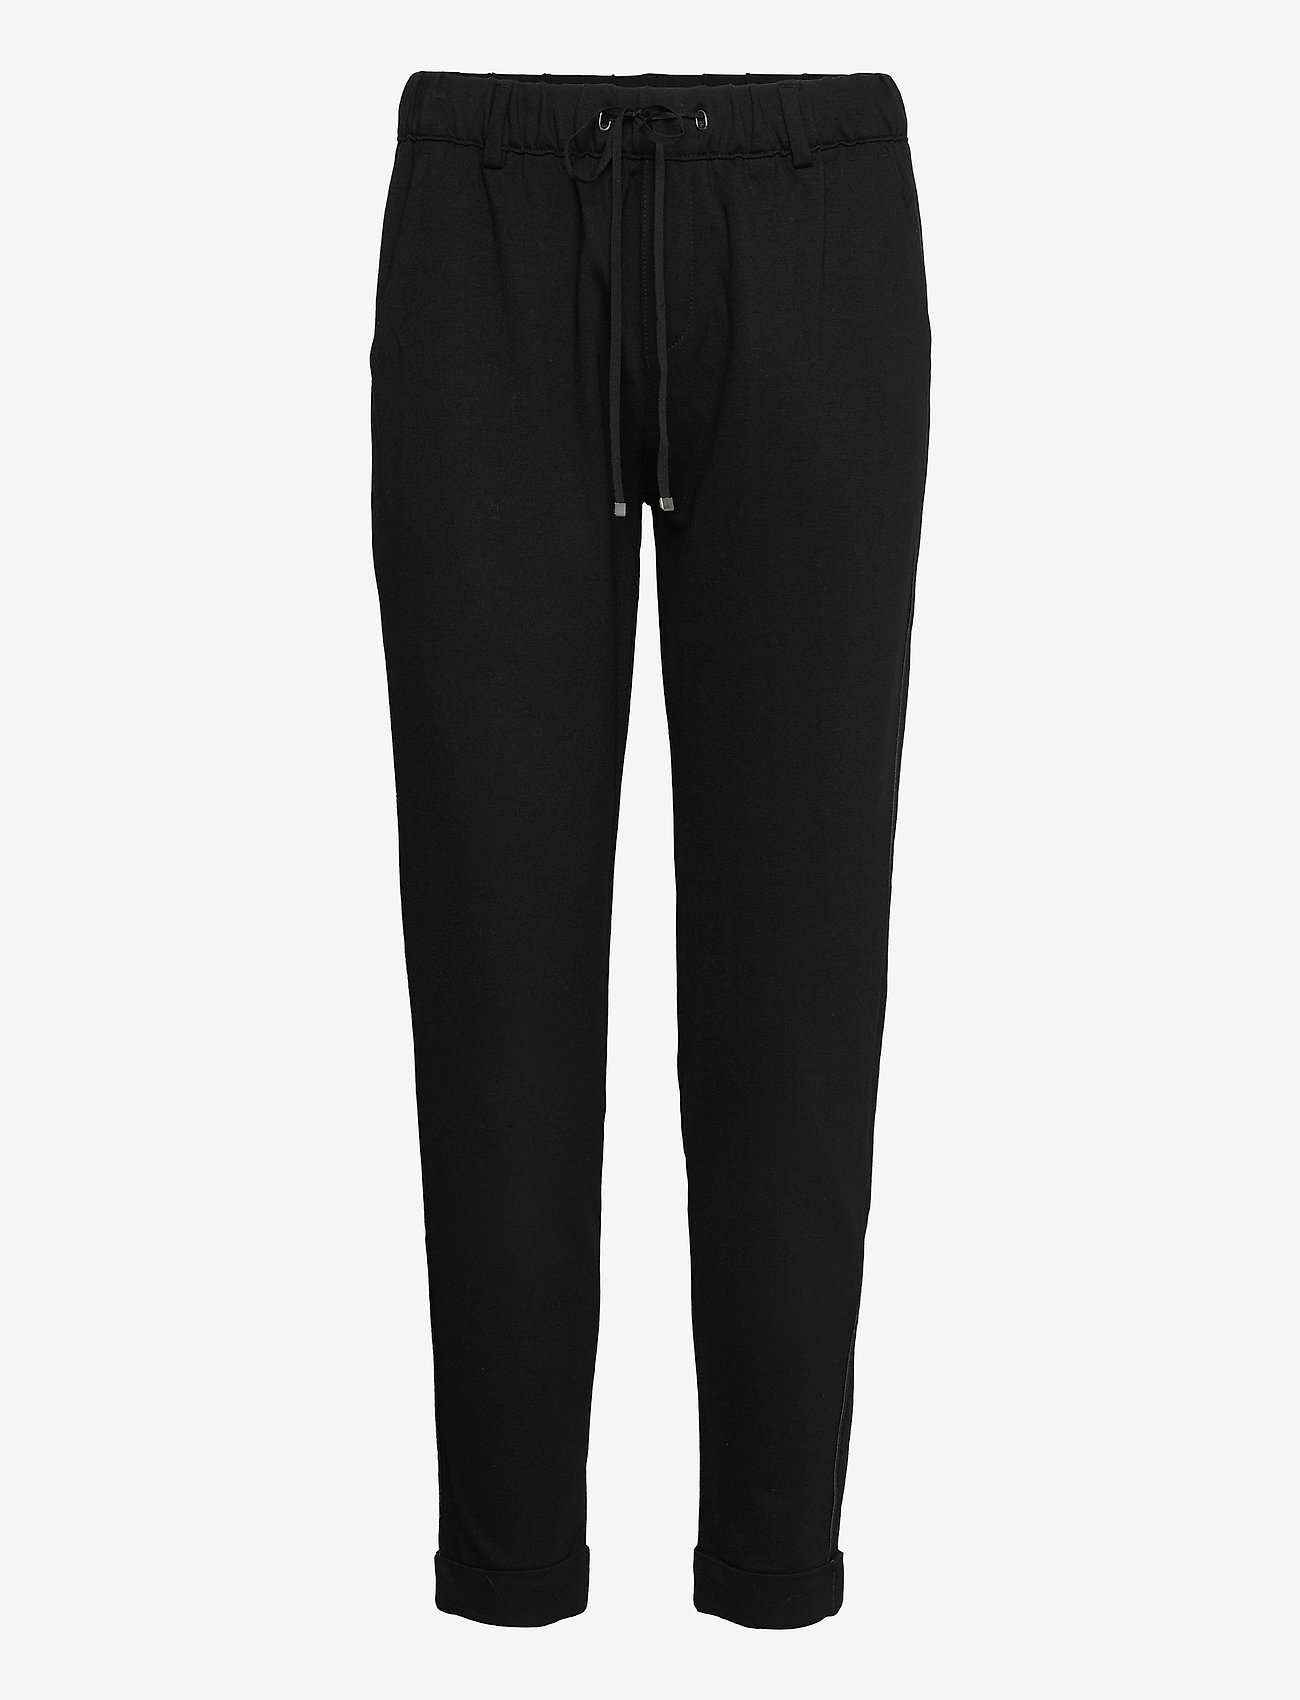 EDC by Esprit - Pants woven - sweatpants - black - 0